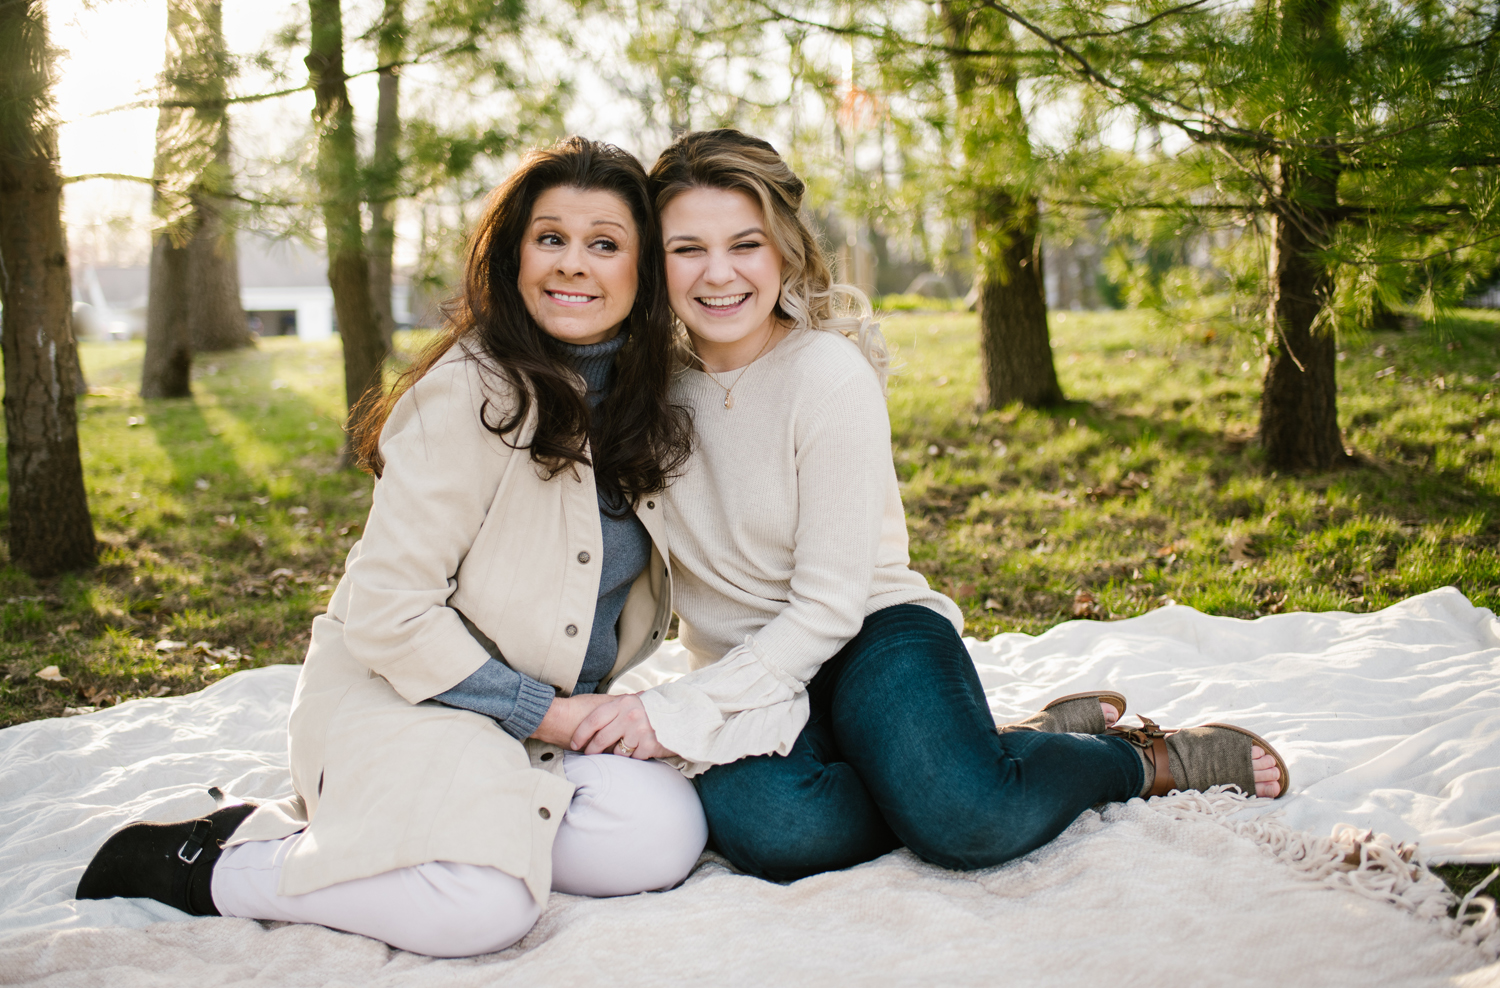 grand-haven-michigan-mothers-day-family-session (95).jpg